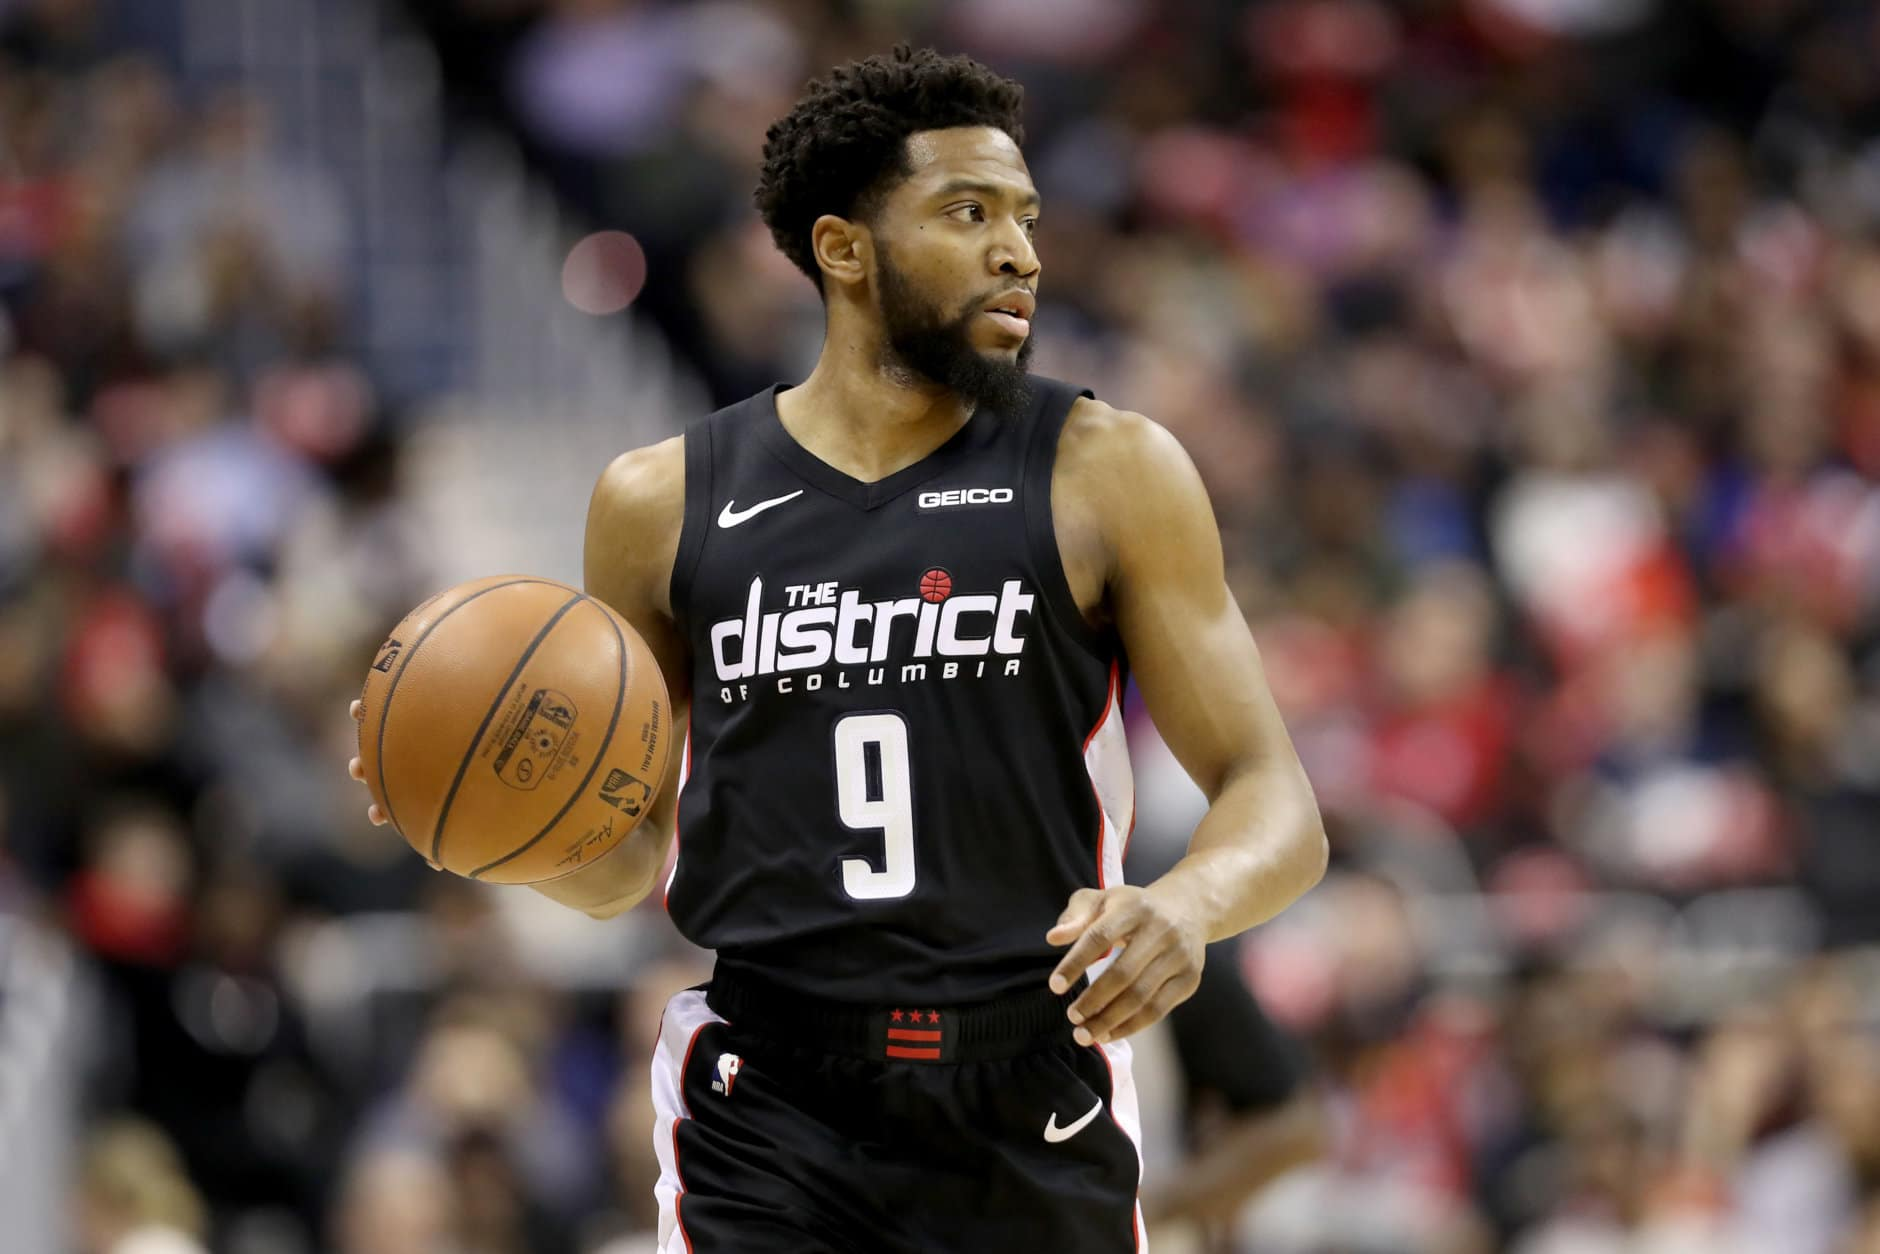 WASHINGTON, DC - JANUARY 21: Chasson Randle #9 of the Washington Wizards dribbles the ball against the Detroit Pistons at Capital One Arena on January 21, 2019 in Washington, DC. NOTE TO USER: User expressly acknowledges and agrees that, by downloading and or using this photograph, User is consenting to the terms and conditions of the Getty Images License Agreement. (Photo by Rob Carr/Getty Images)